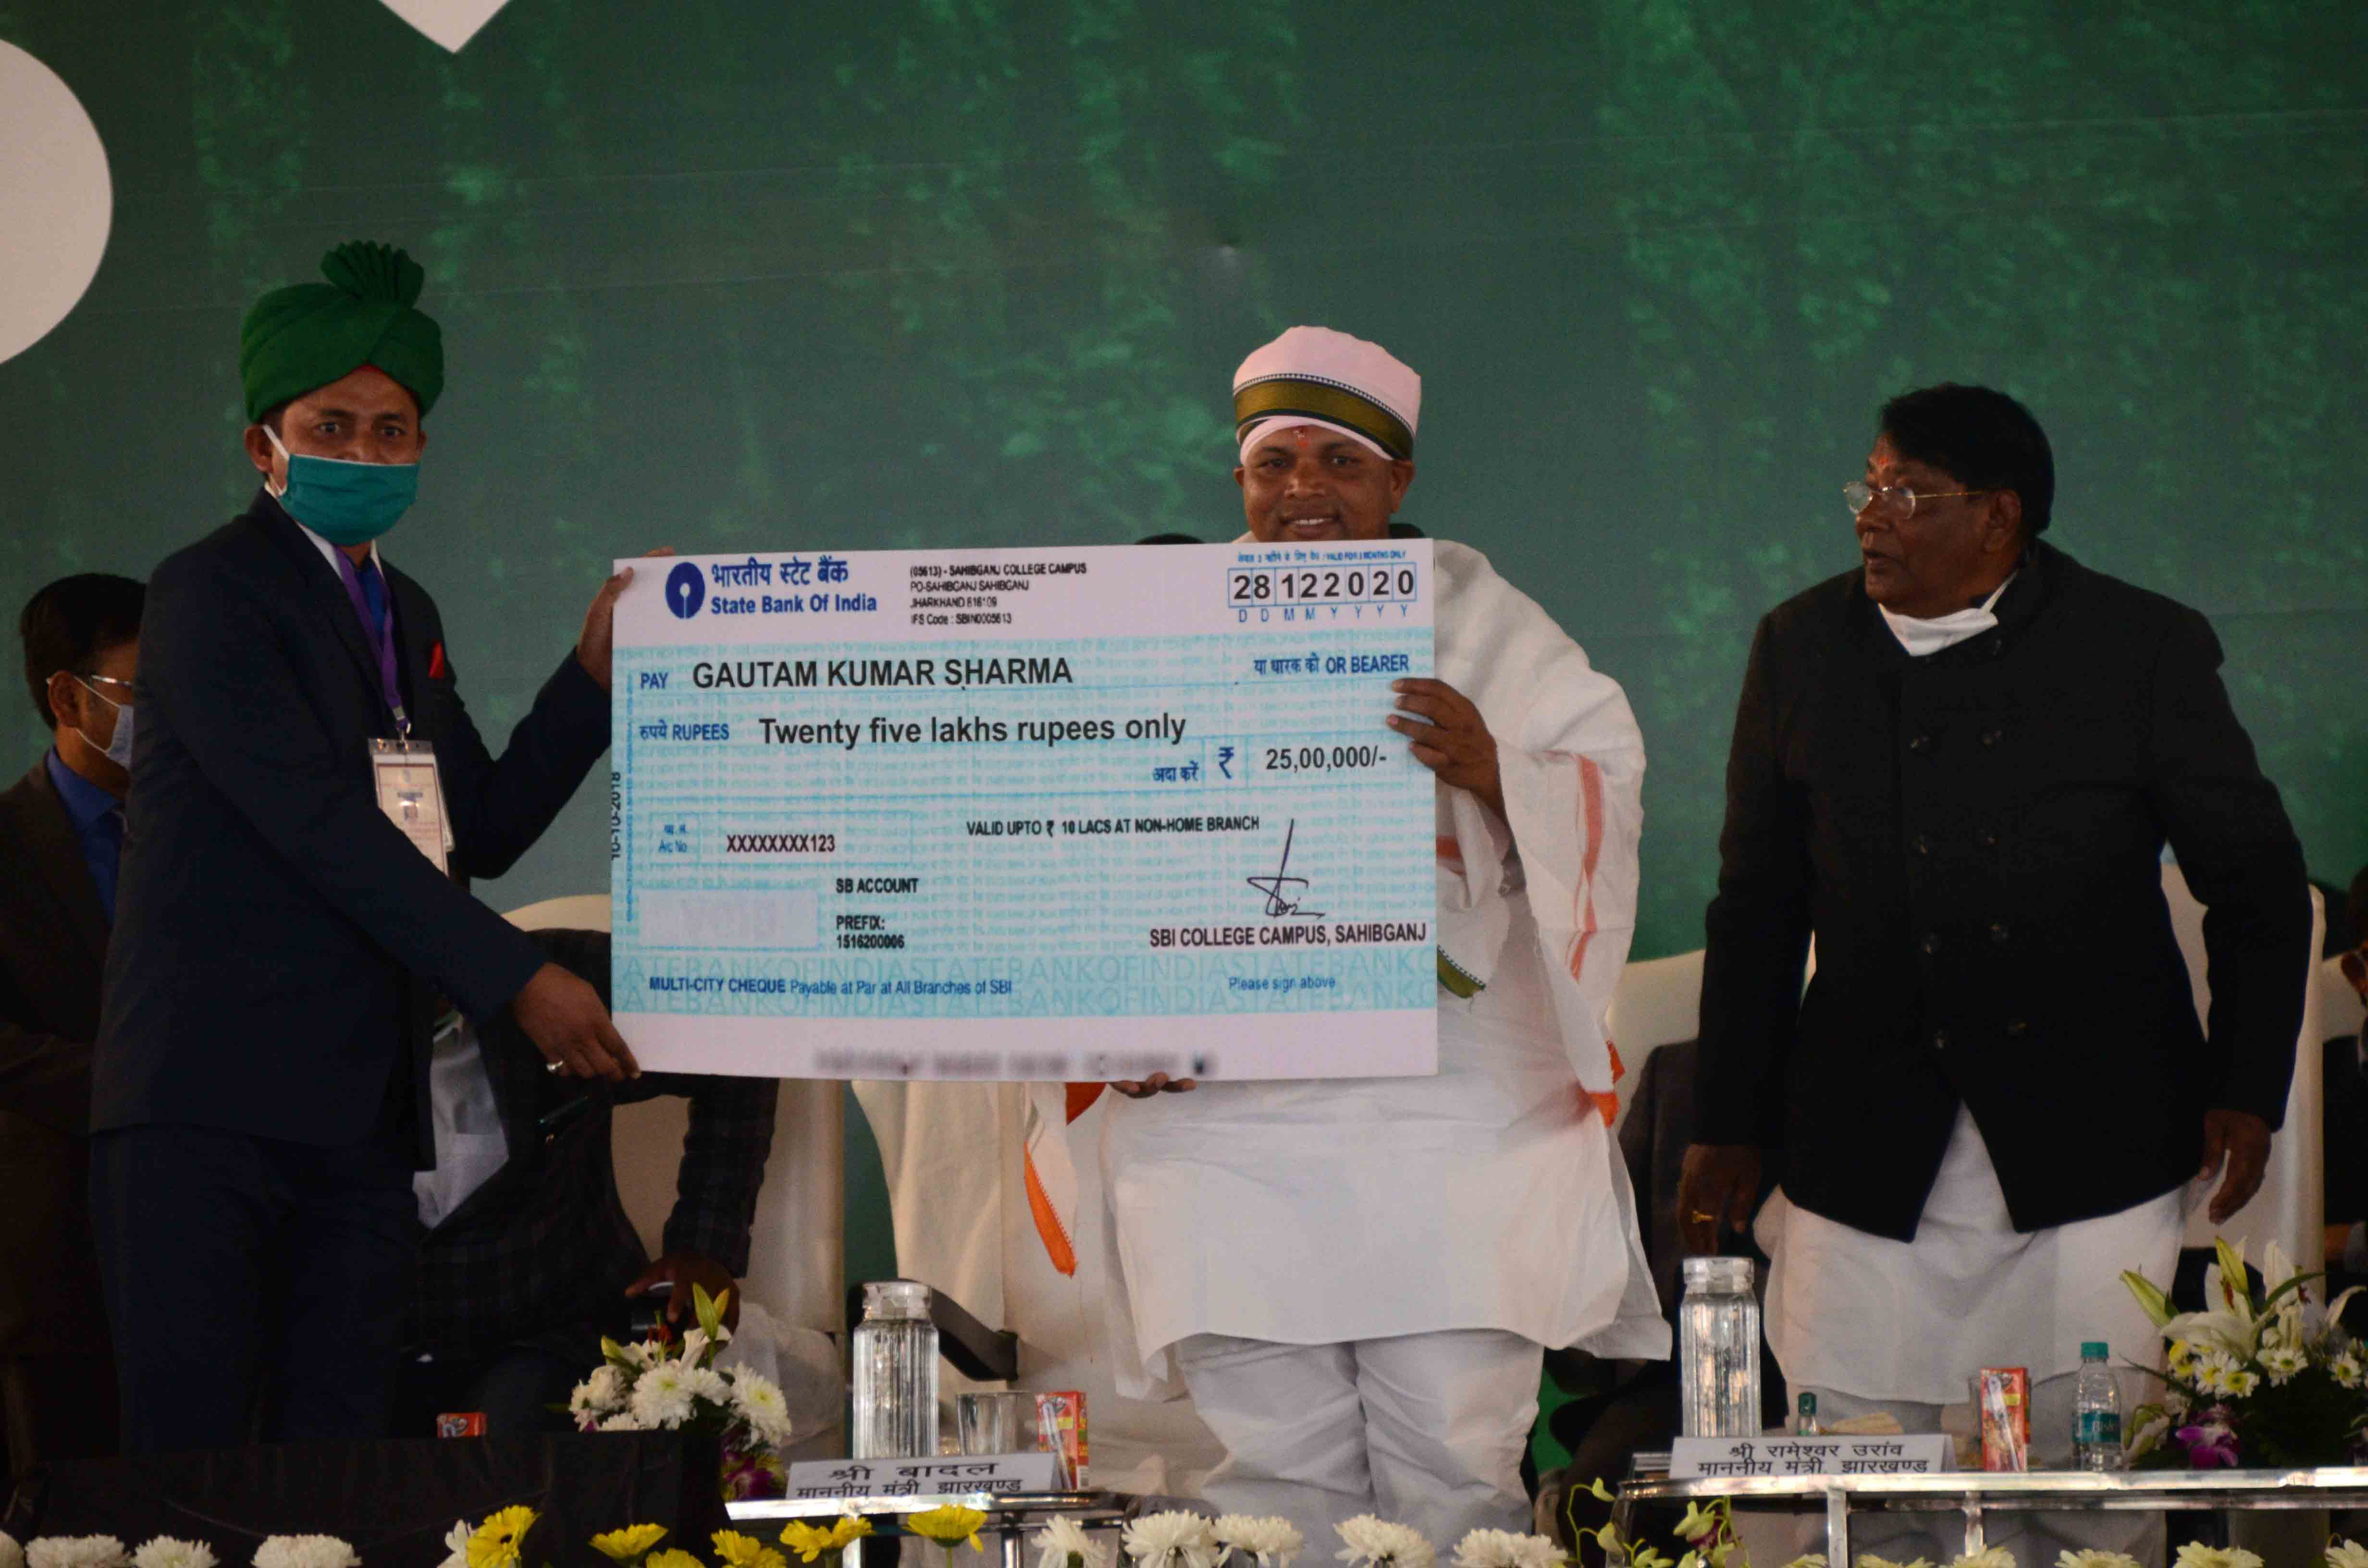 State agricultural minister Badal Patralekh distributing assets among beneficiaries of government schemes on the first anniversary of the Hemant Soren government at Morabadi Ground in Ranchi on Tuesday.